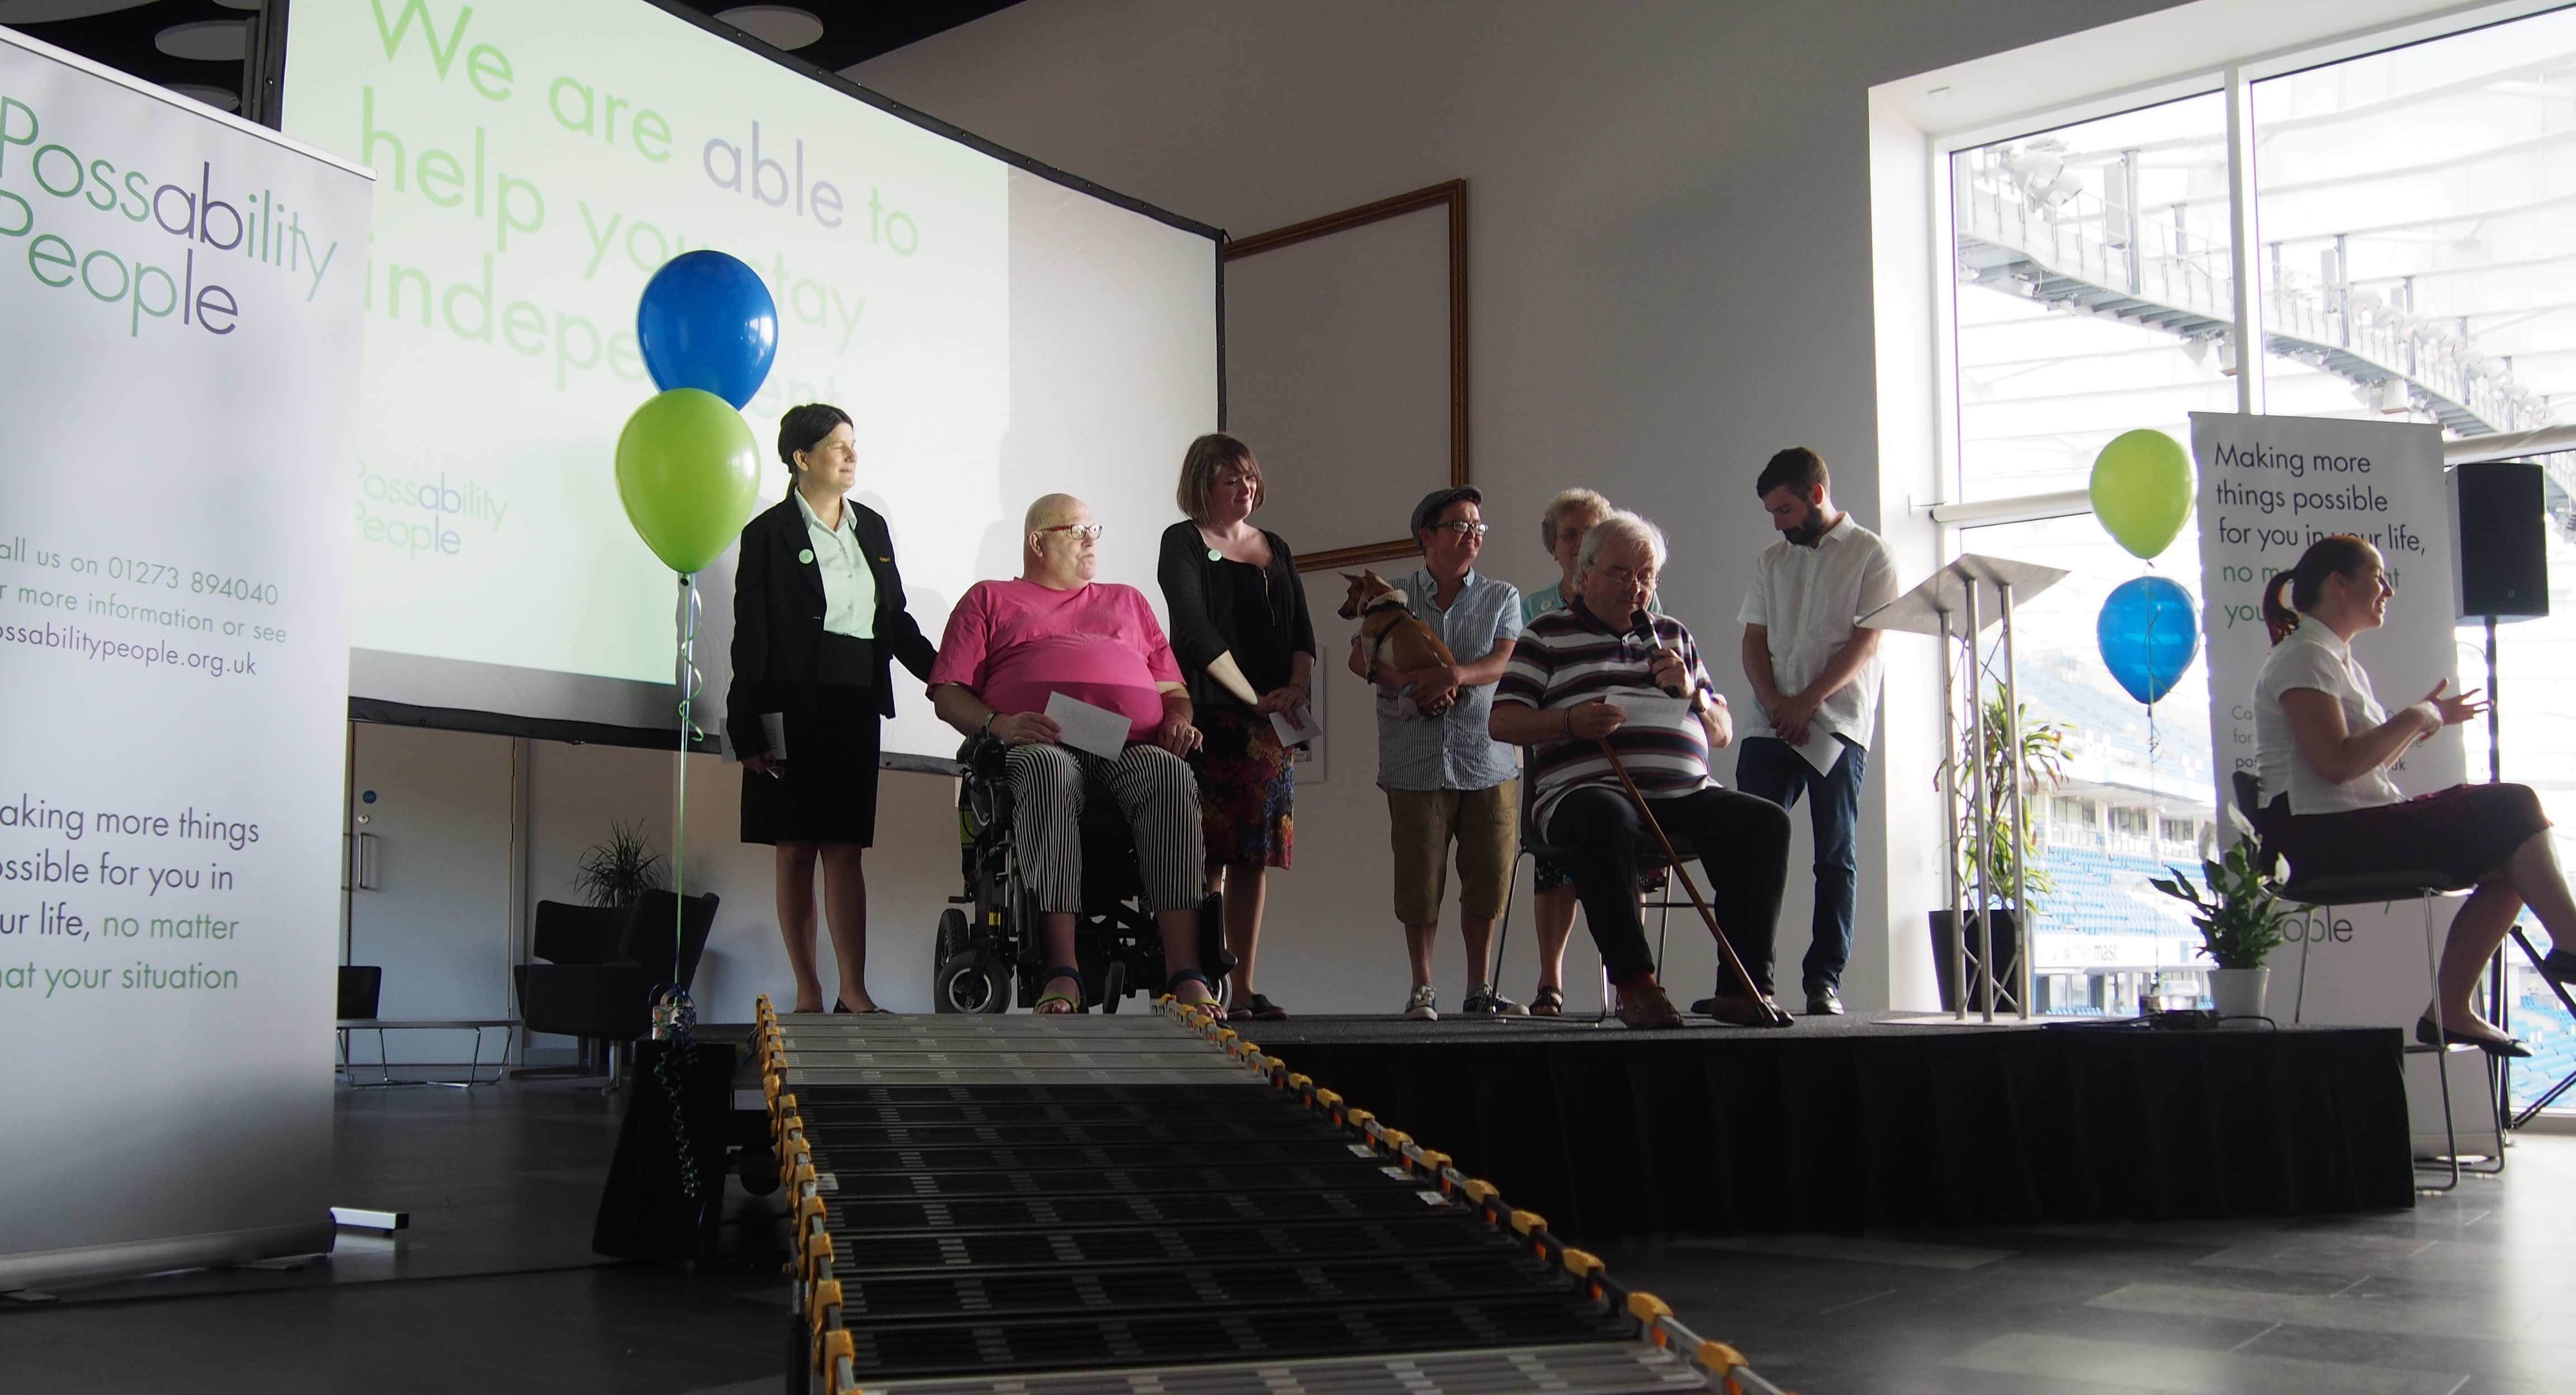 Trustees and volunteers on stage